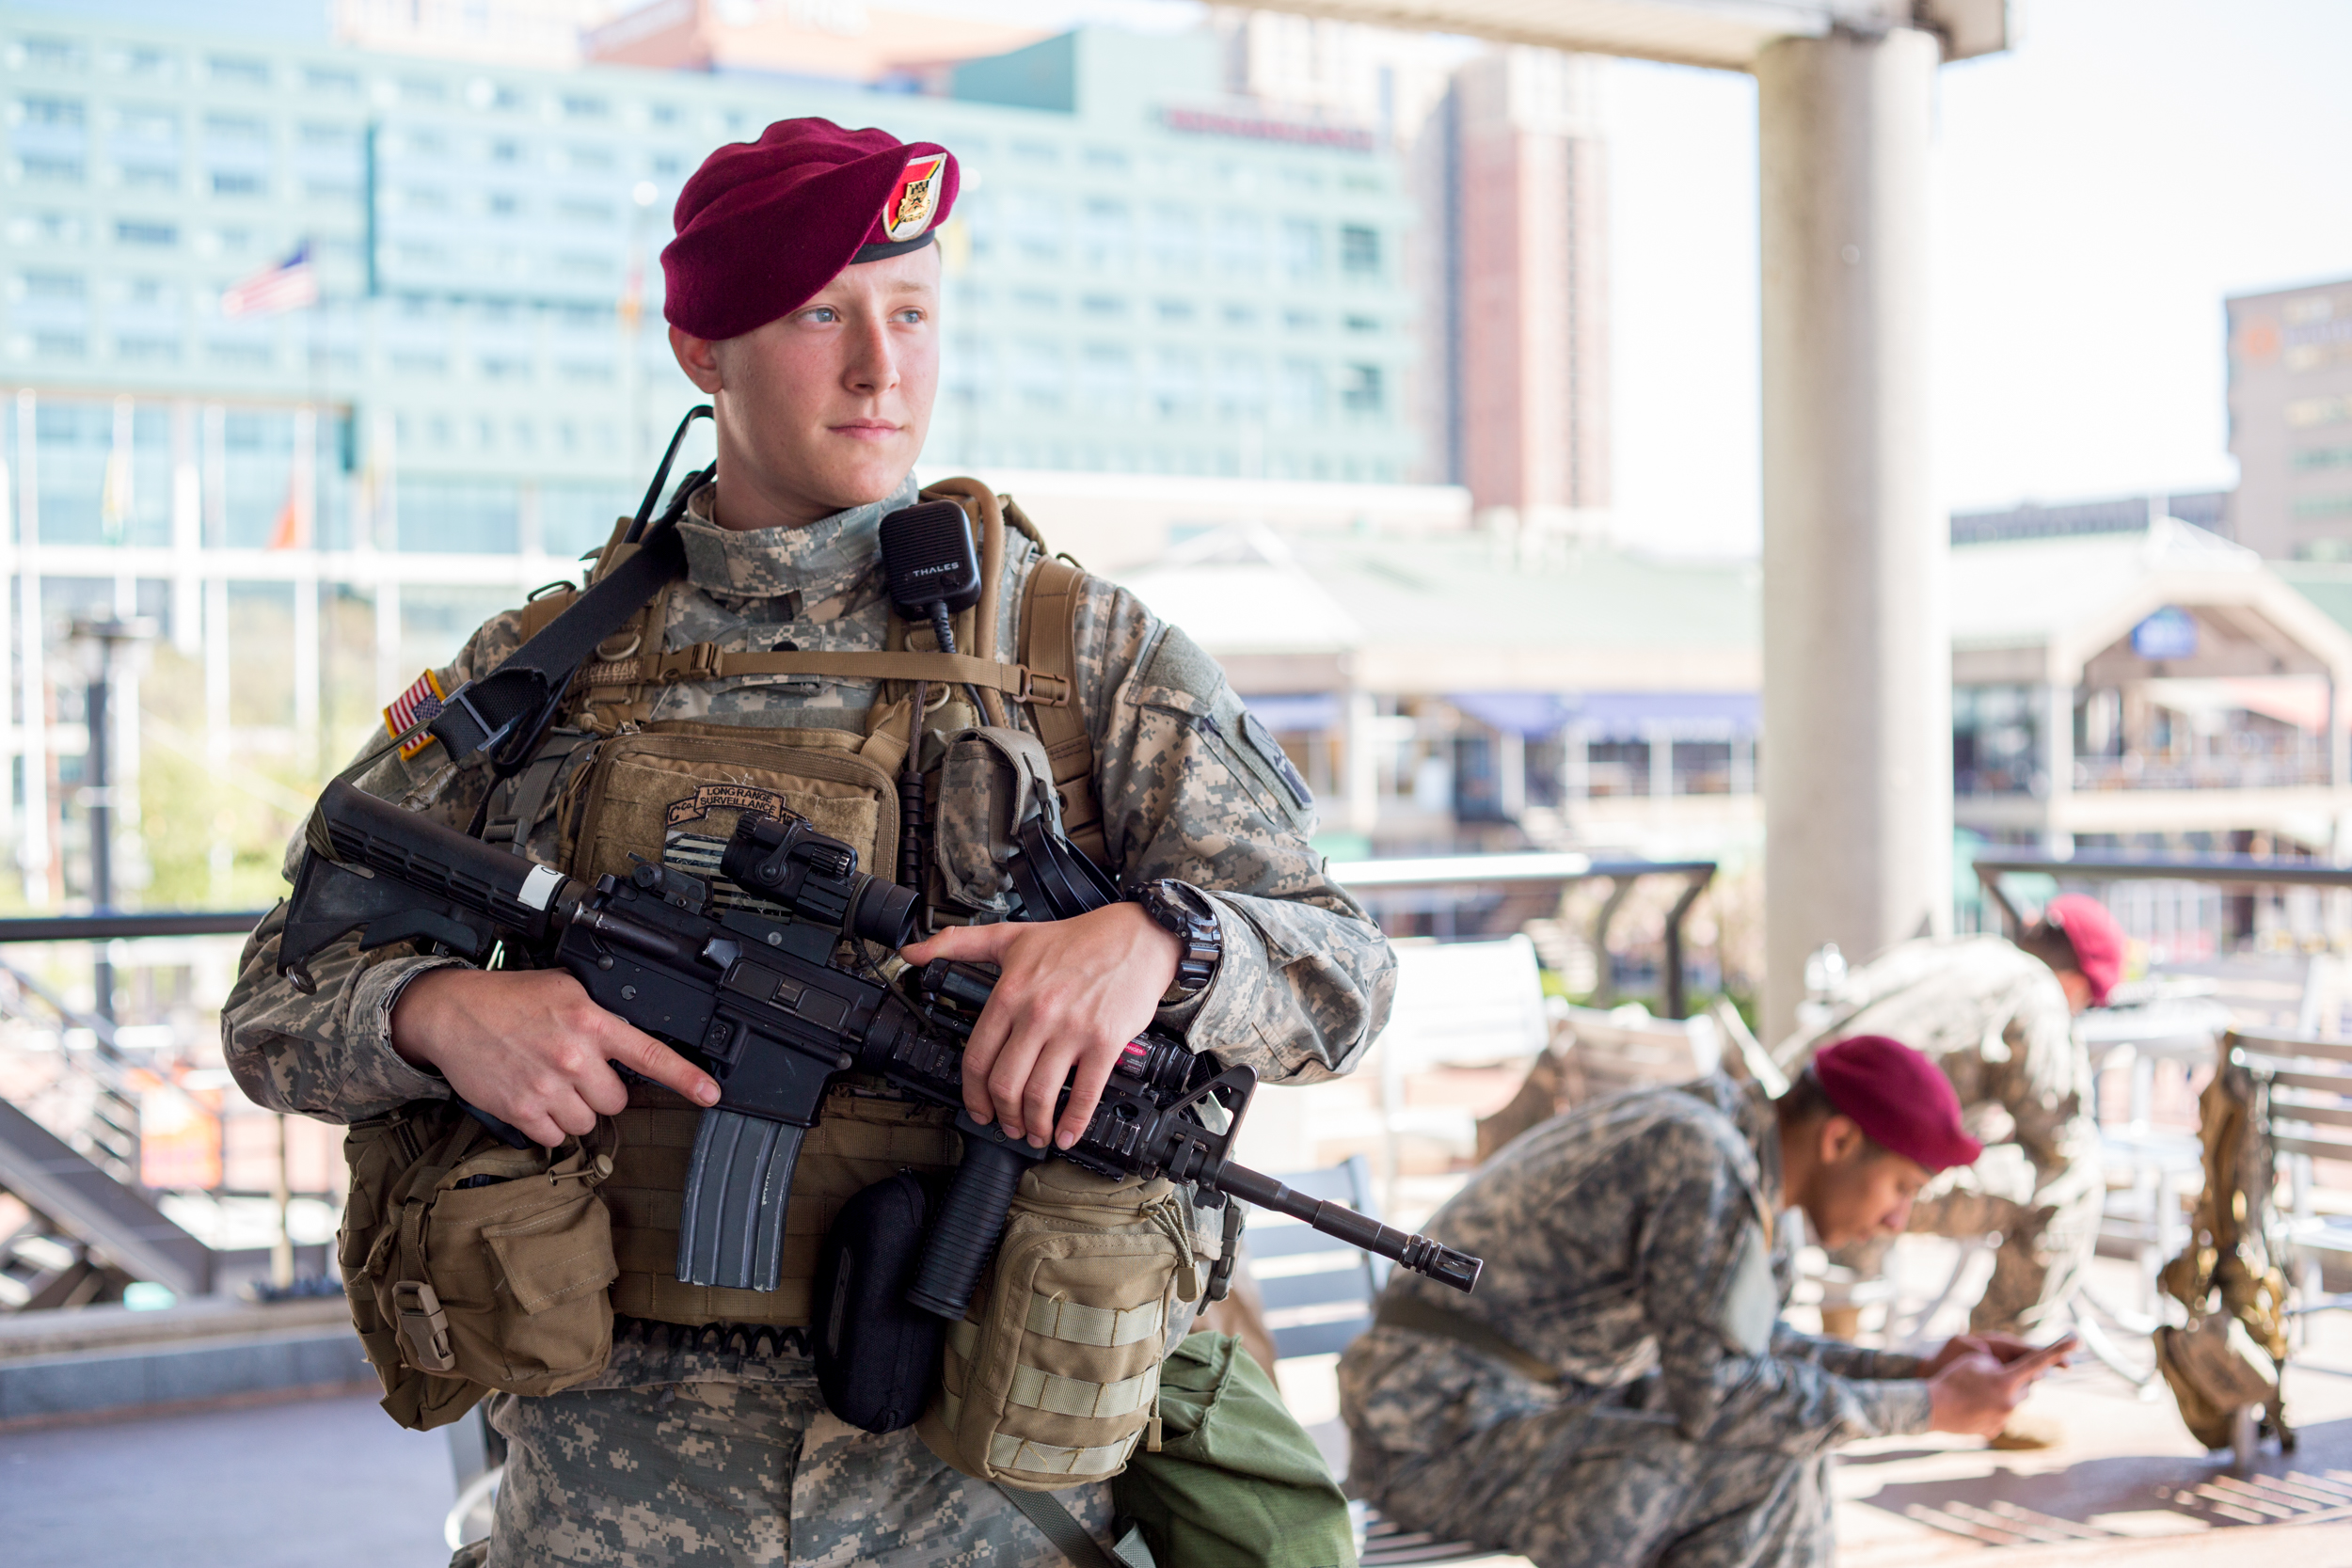 Ian McKinley, specialist, 21, stands guard at The Inner Harbor in Baltimore, Maryland, which has since become a staging area for the National Guard.